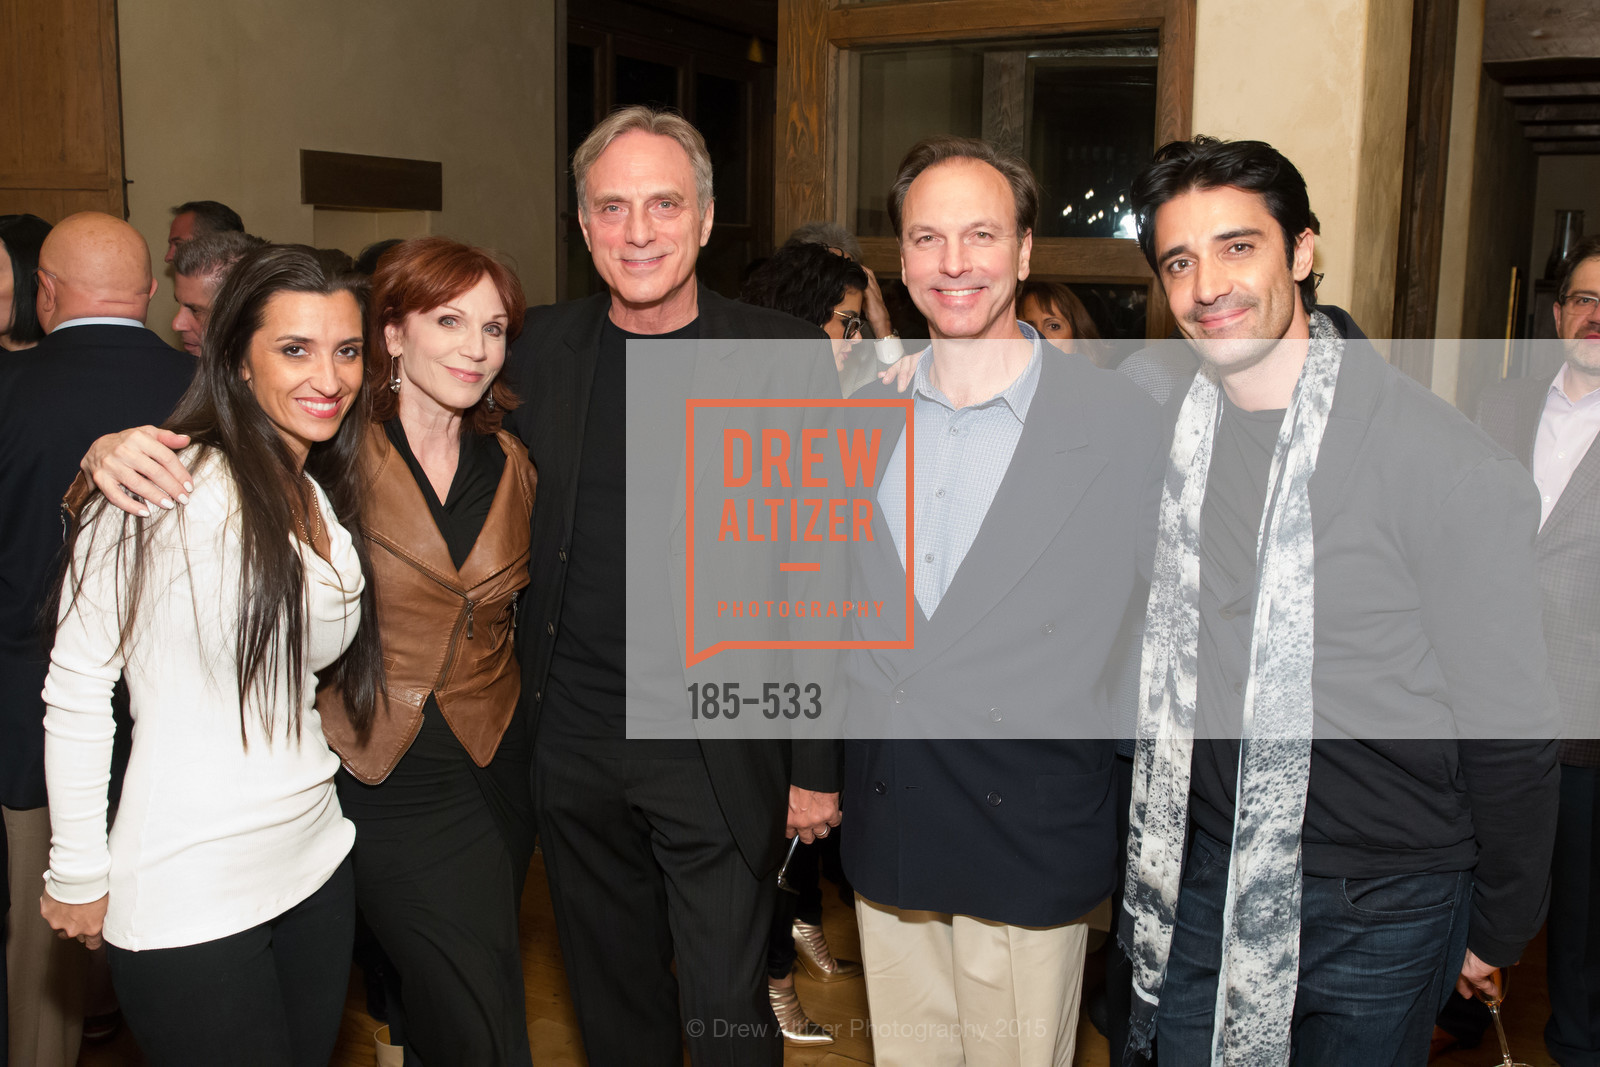 Cheryl Marini, Marilu Henner, Michael Brown, Lorin Henner, Gilles Marini, Hellenic Charity Ball Cocktail Reception, Kokkari. 200 Jackson St, San Francisco, CA 94111, November 13th, 2015,Drew Altizer, Drew Altizer Photography, full-service agency, private events, San Francisco photographer, photographer california